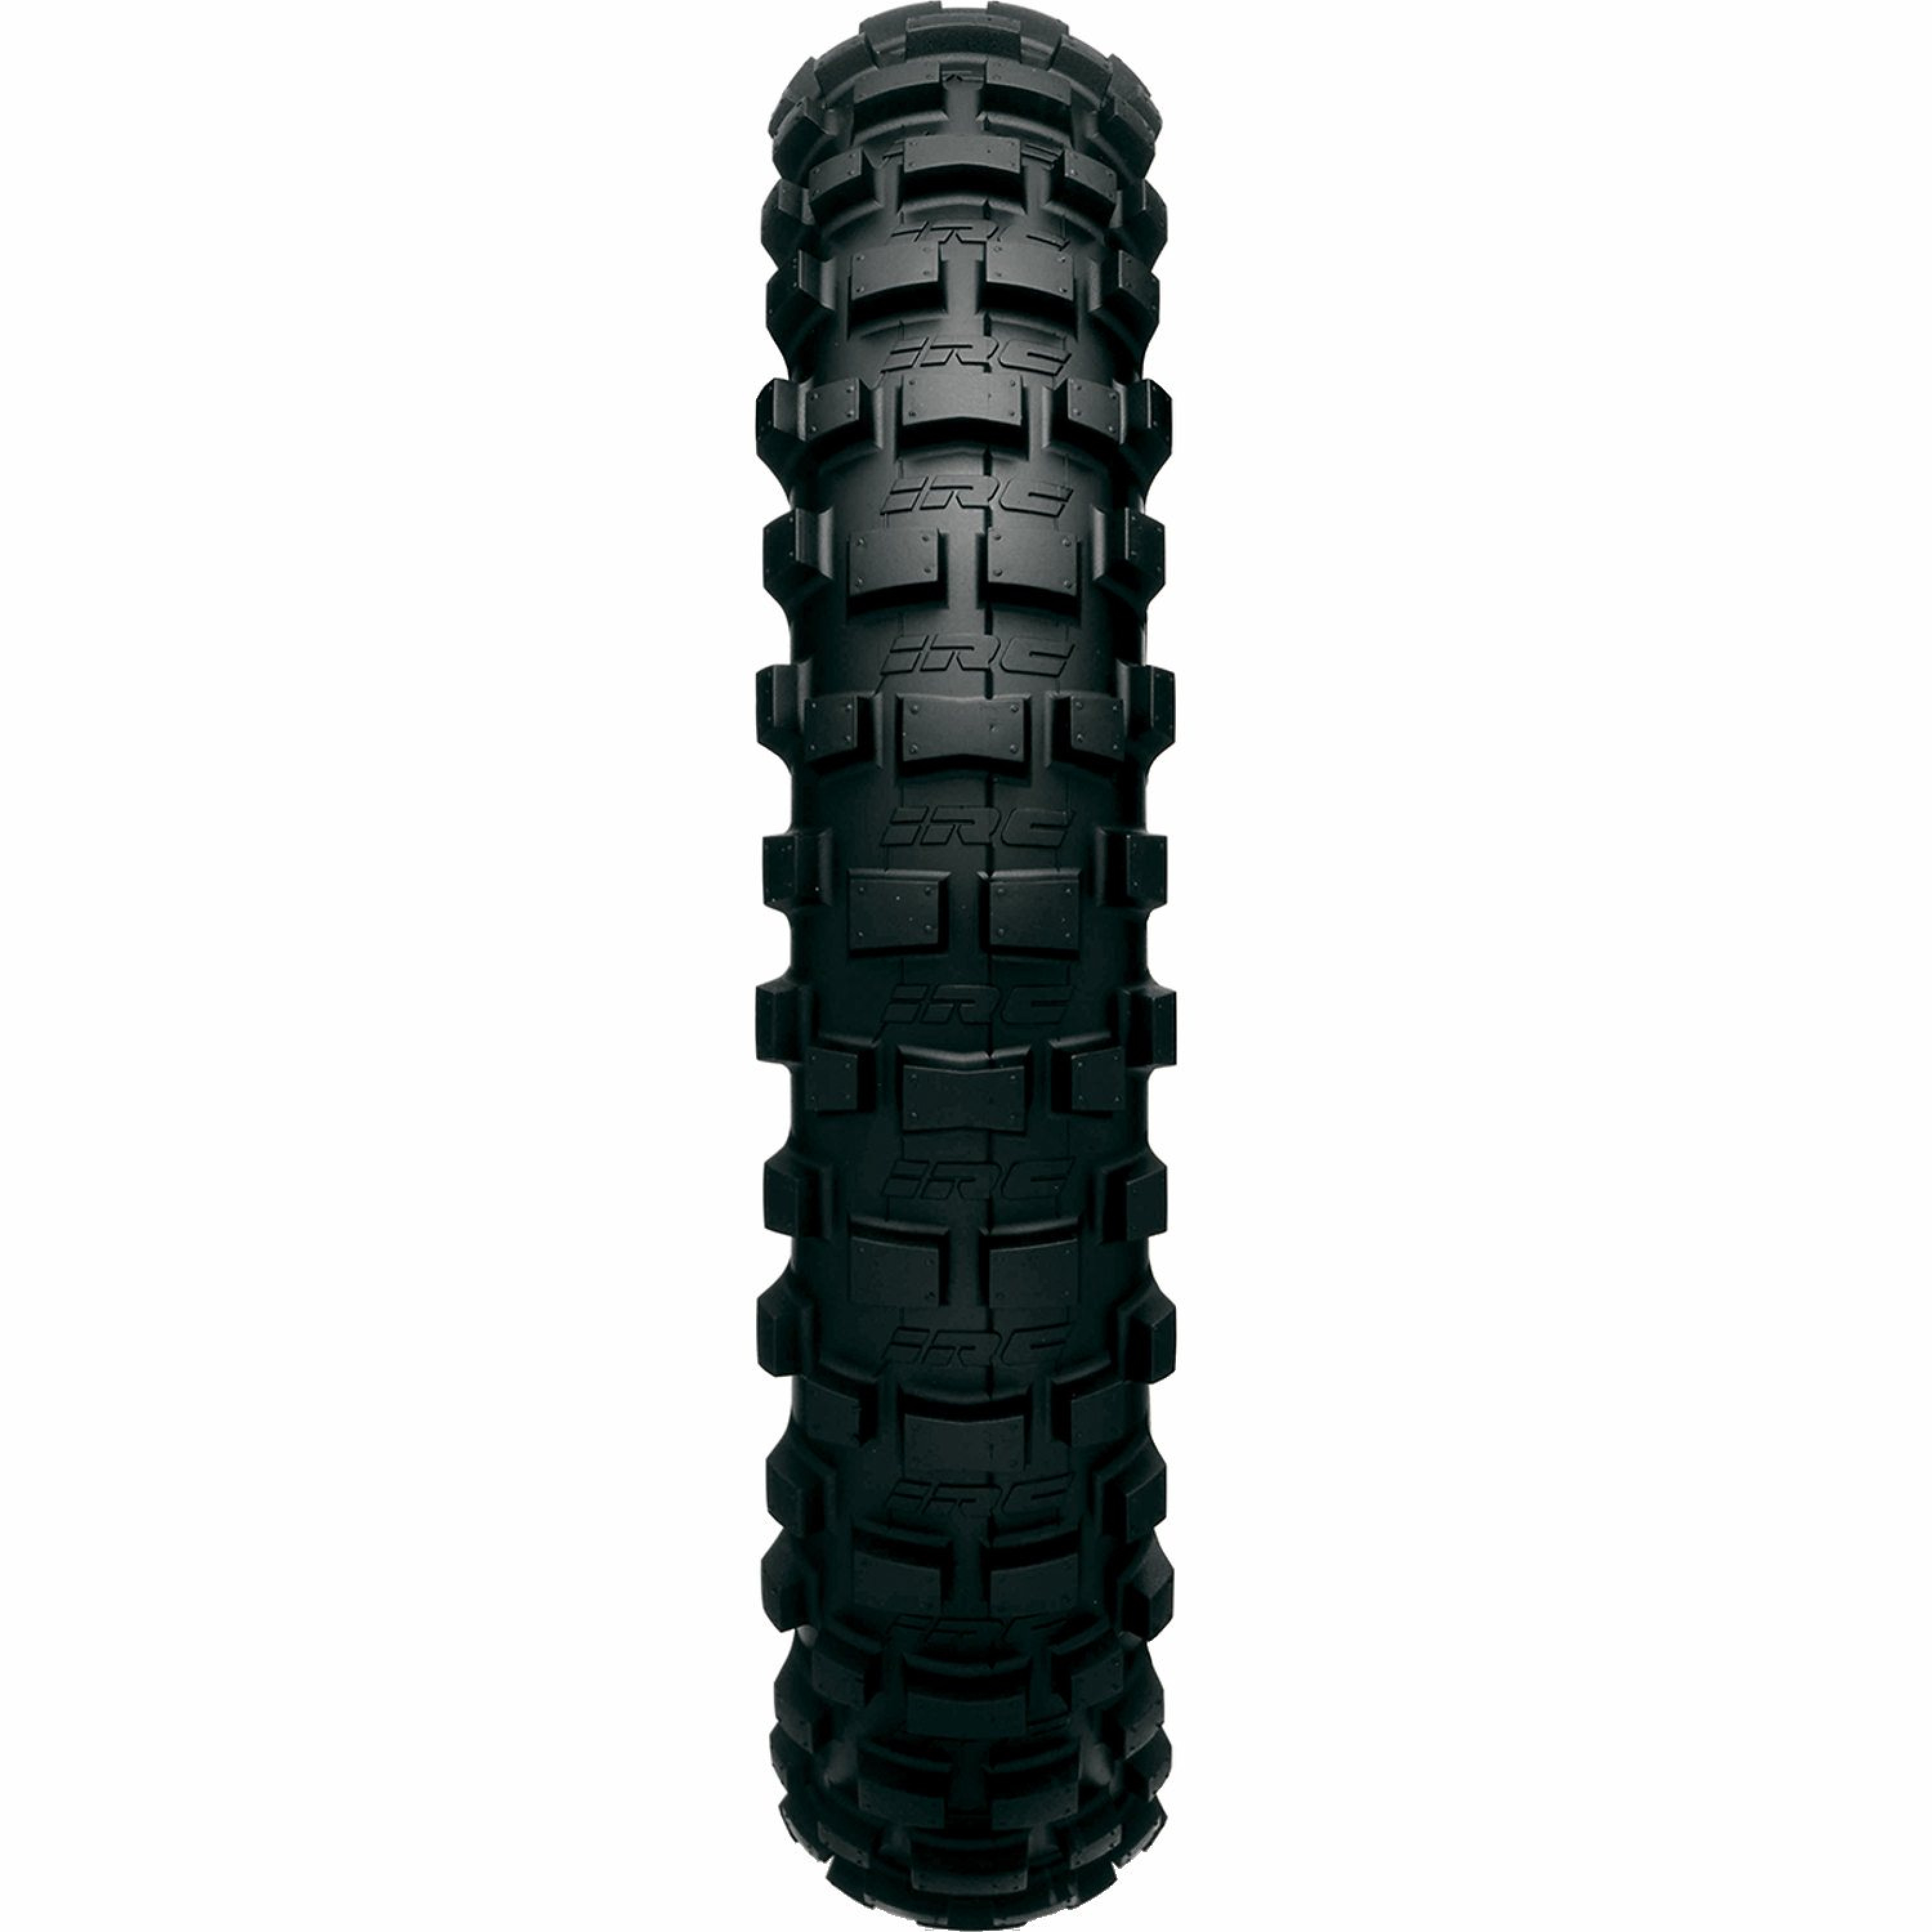 TIRE IX-KIDS 80/100-10R